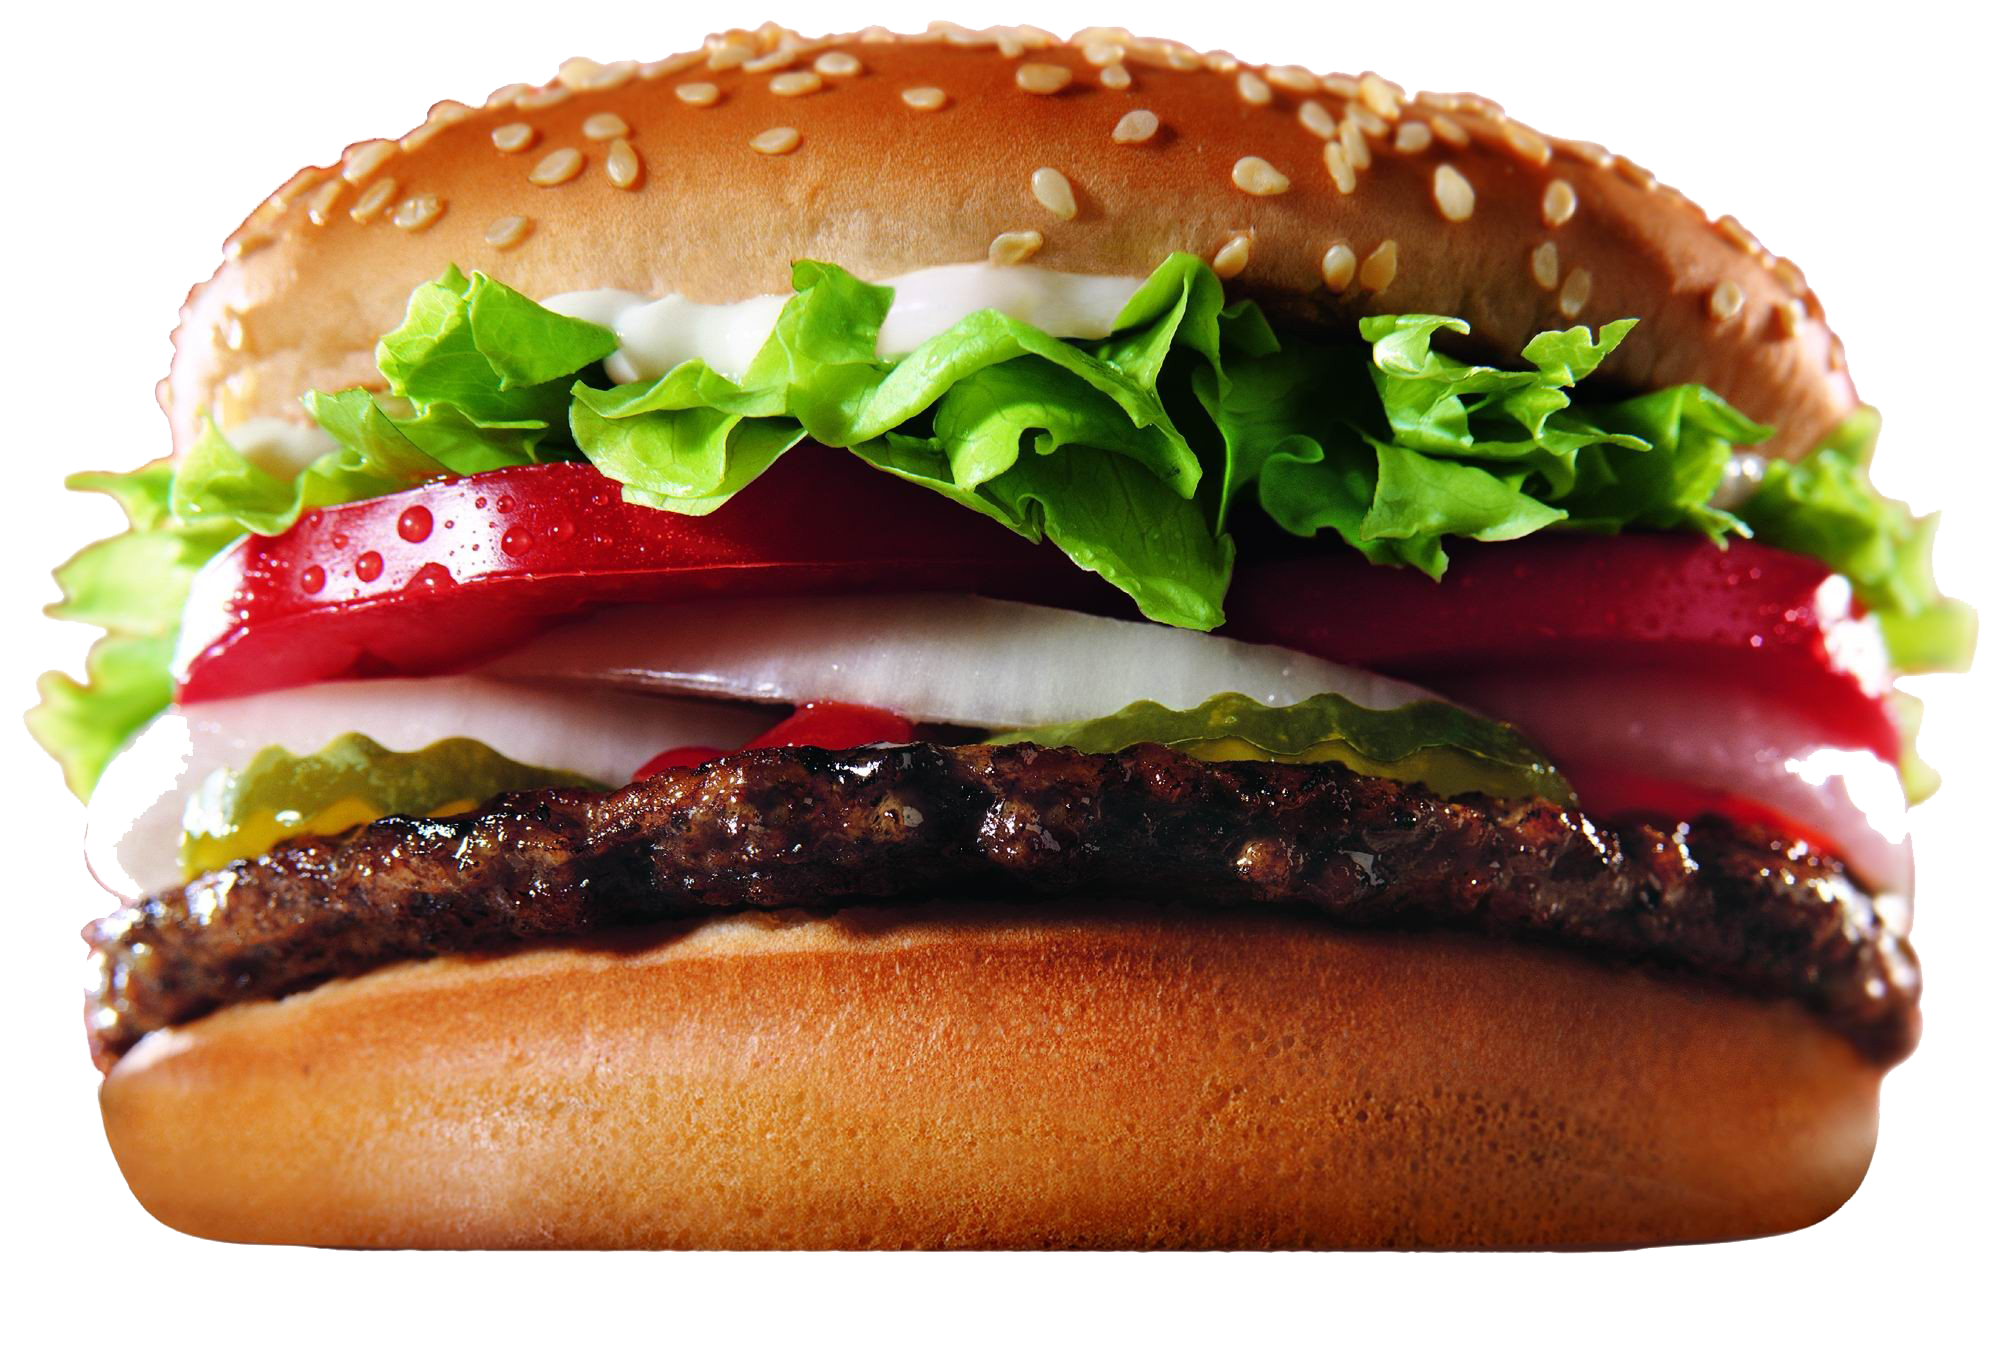 Burger Png Picture PNG Image - Burger PNG HD